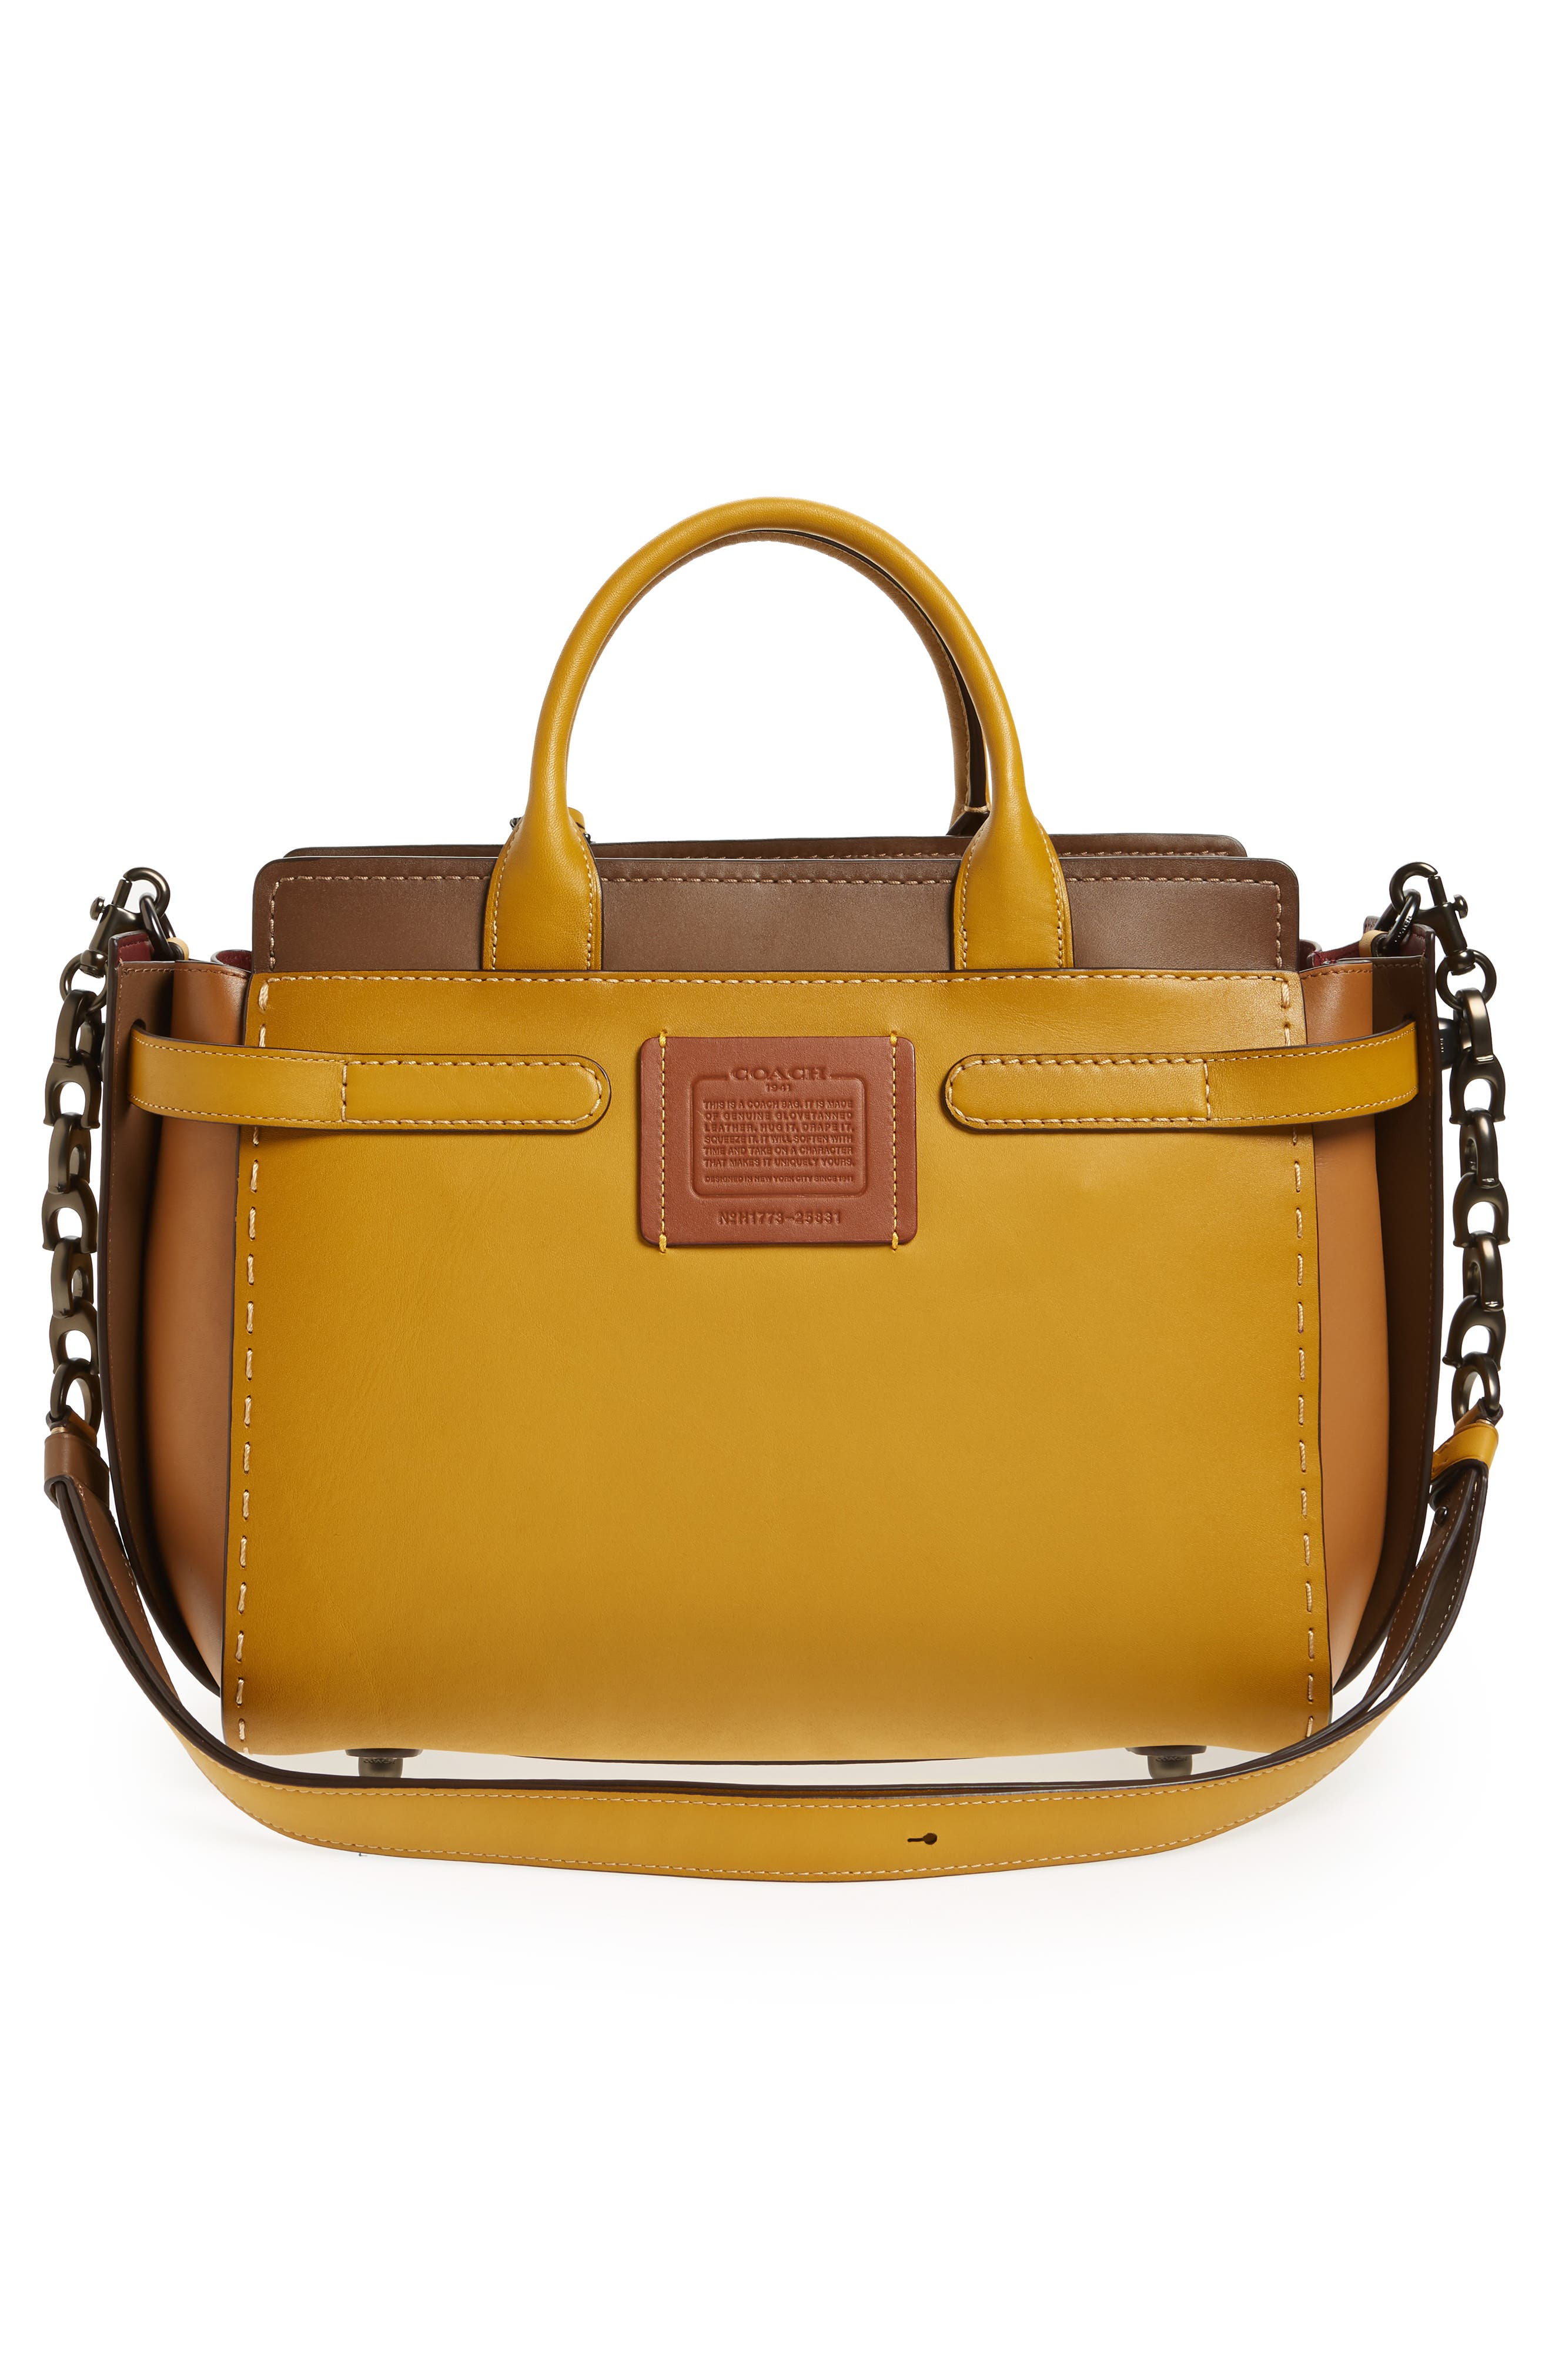 COACH Double Swagger Leather Satchel,                             Alternate thumbnail 3, color,                             700